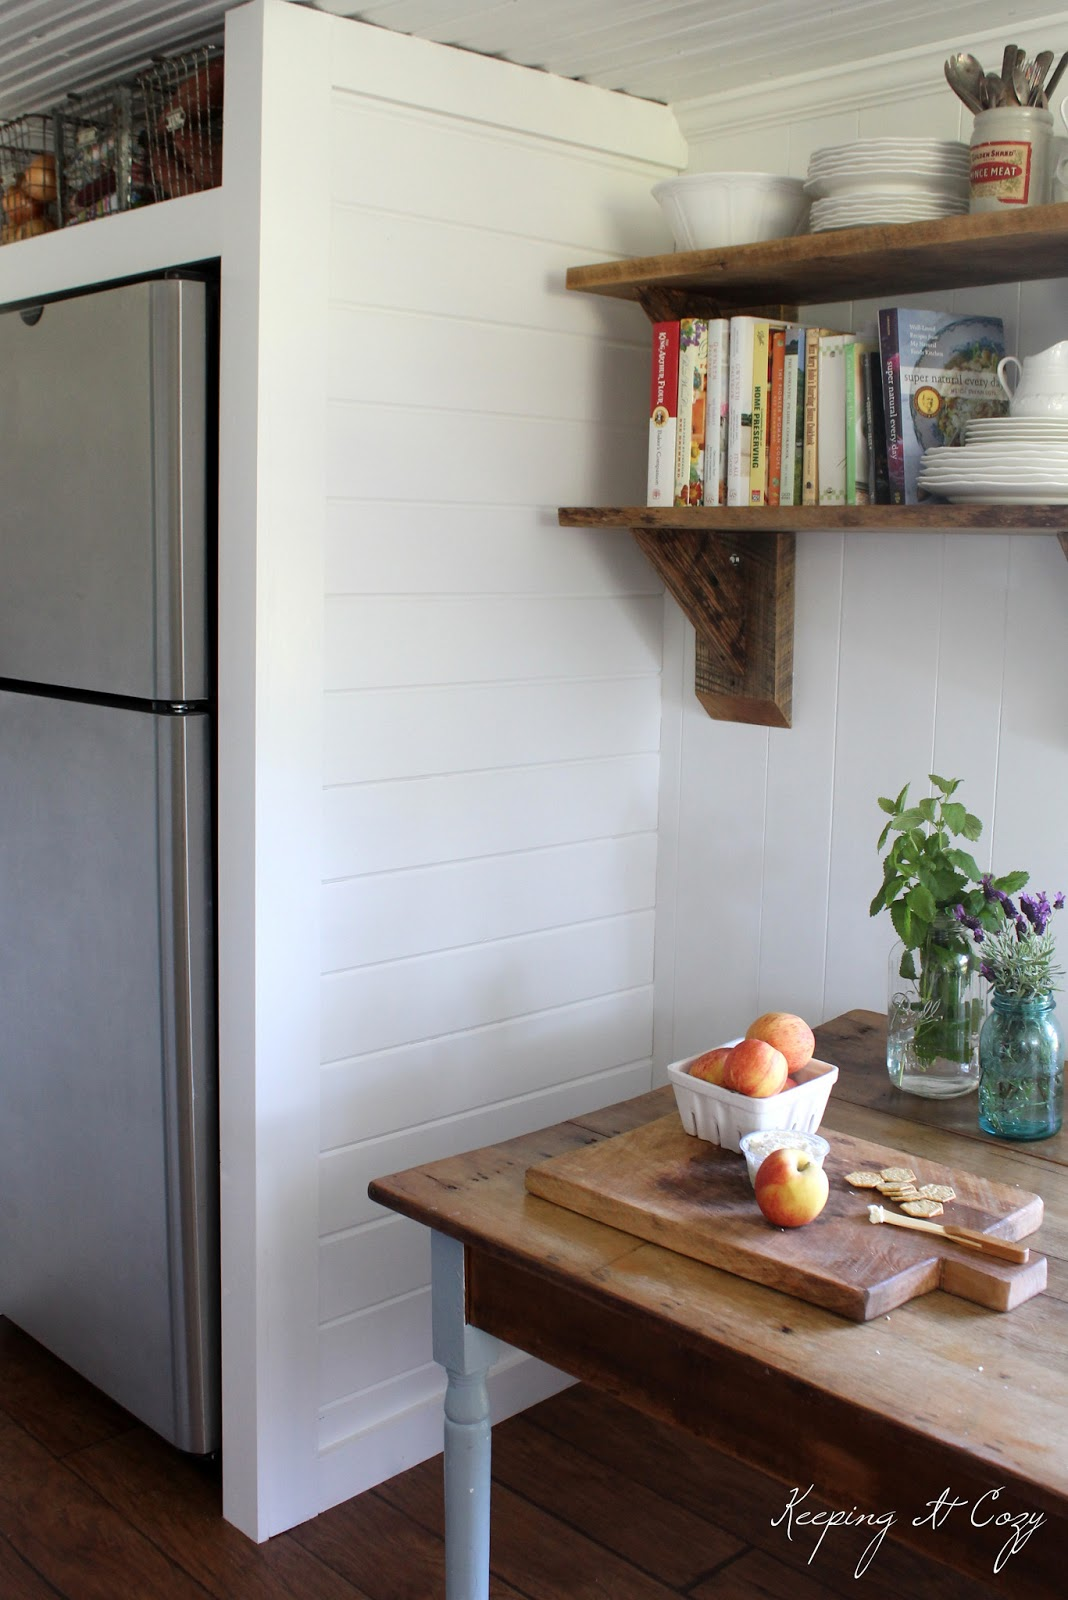 Keeping It Cozy Kitchen Update Building a Refrigerator Cabinet